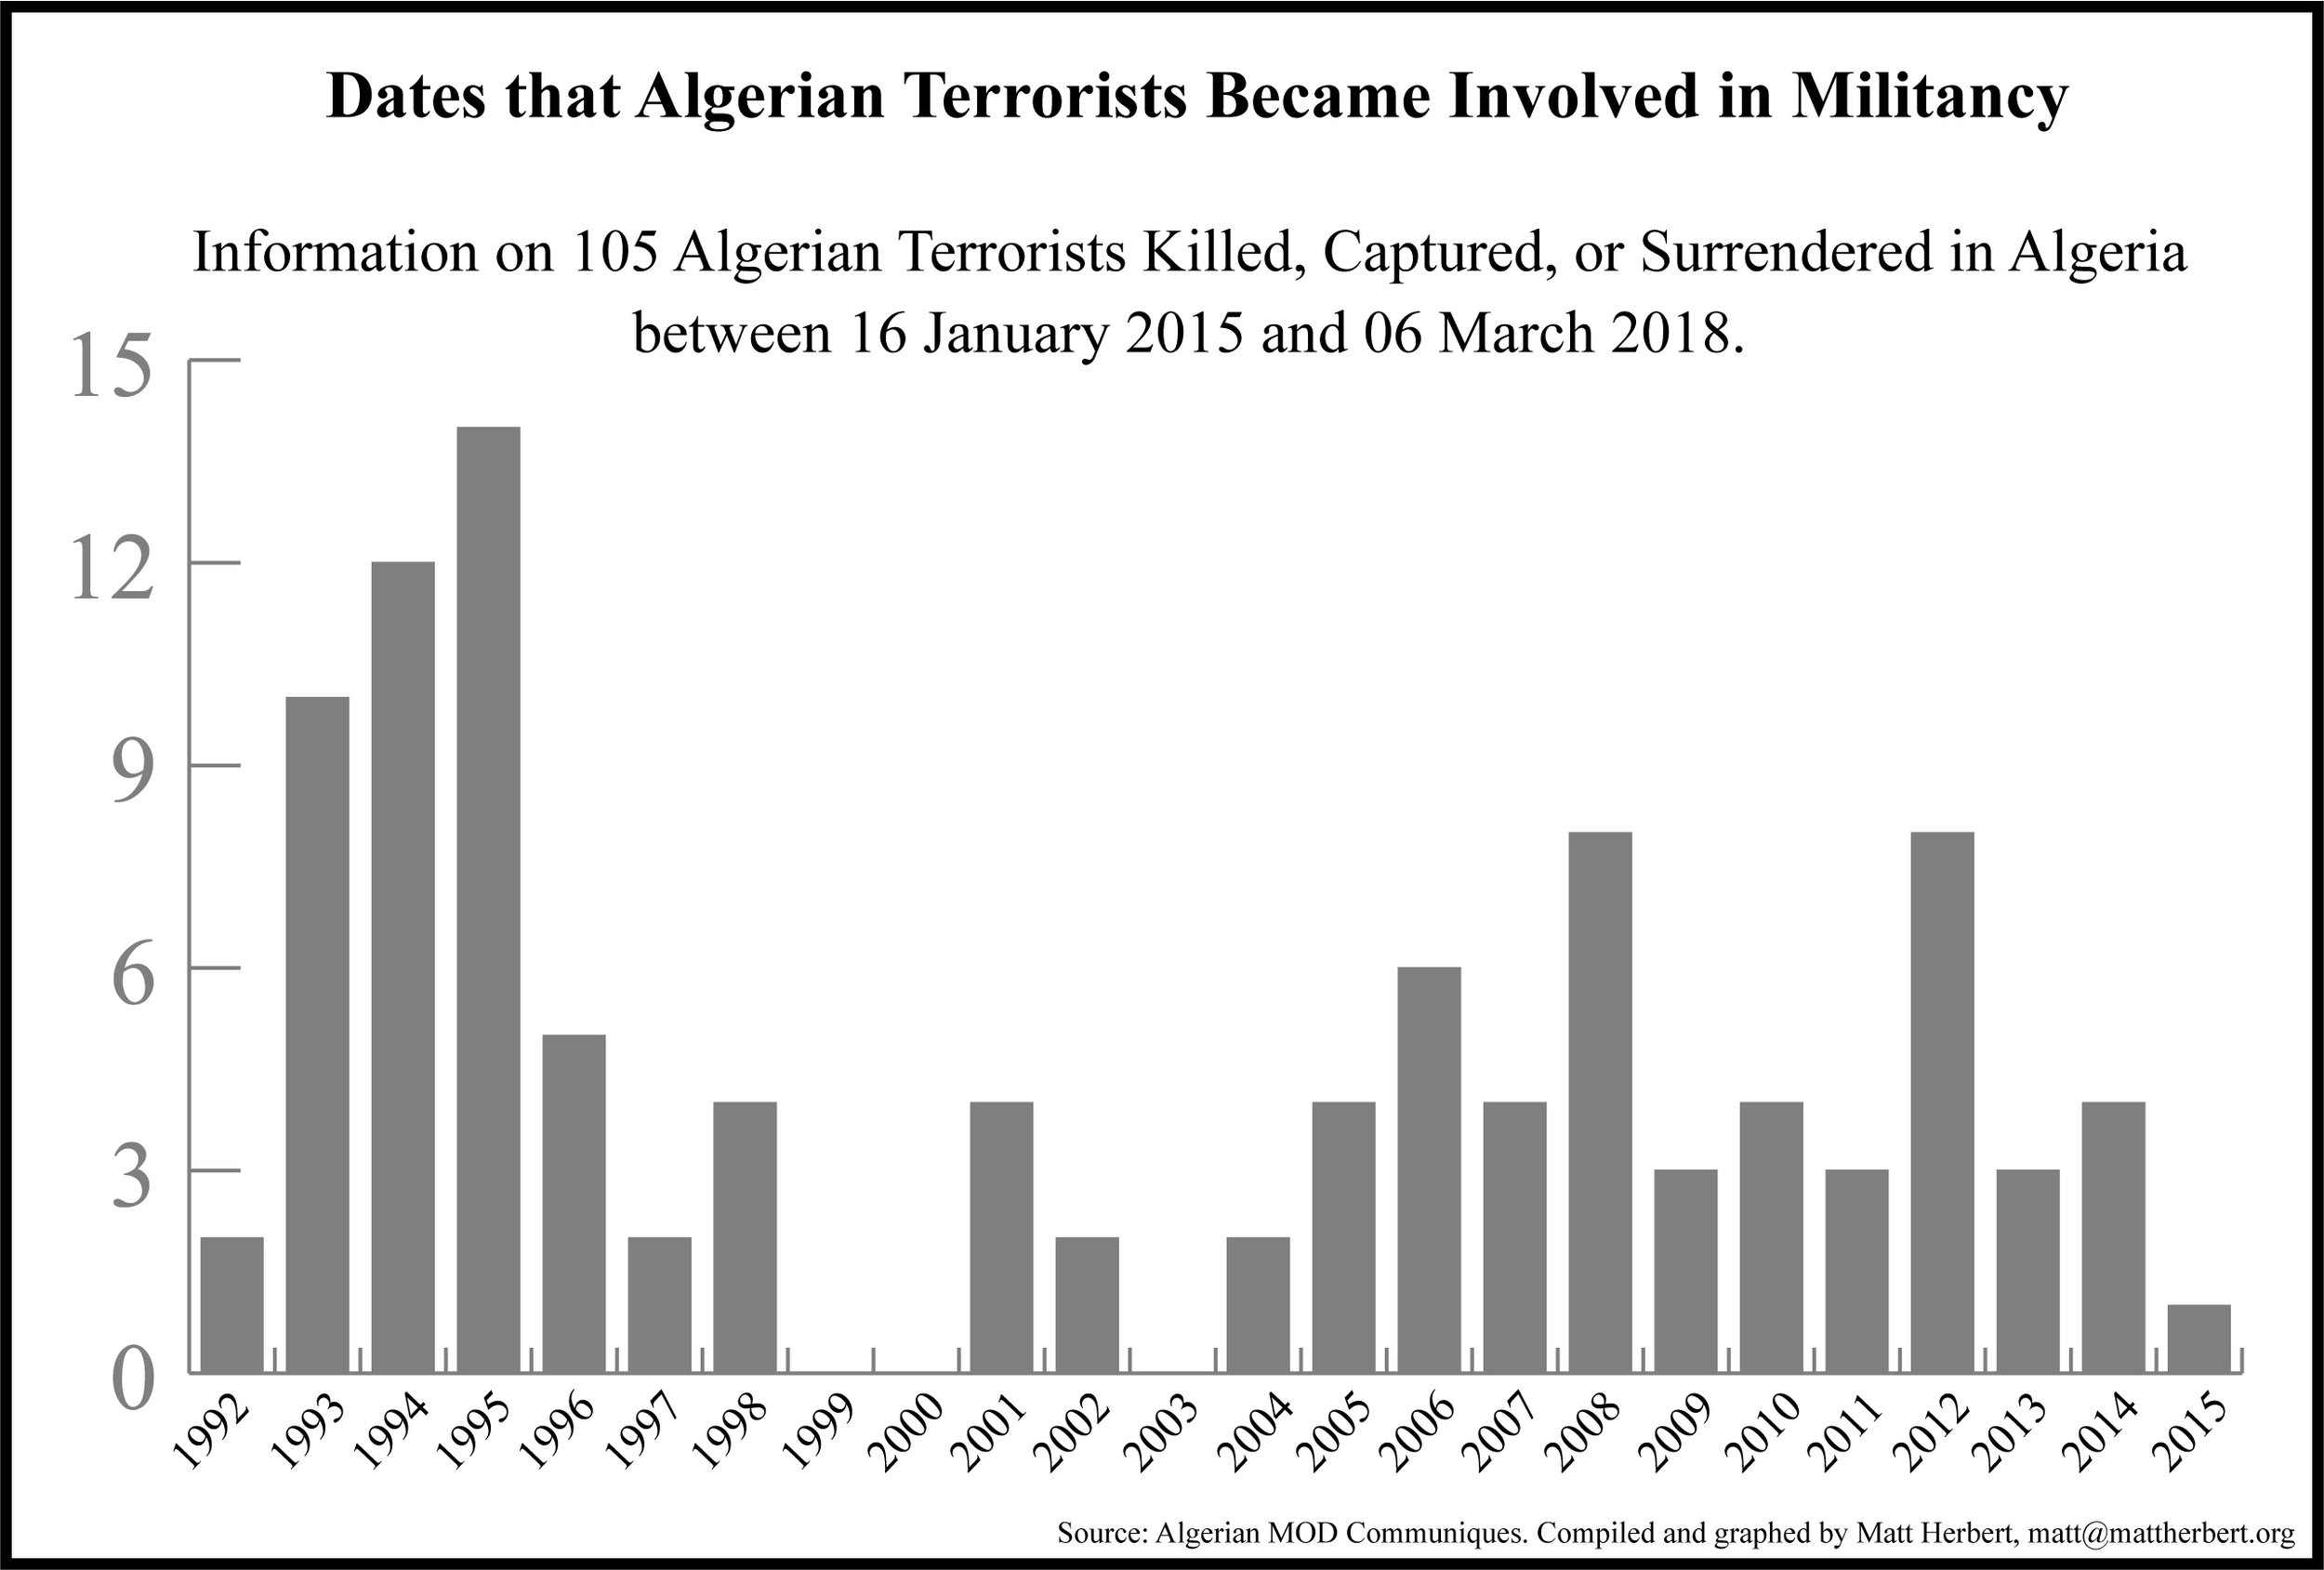 Date that Algerian Terrorists Became Involved in Militancy10032018.jpg